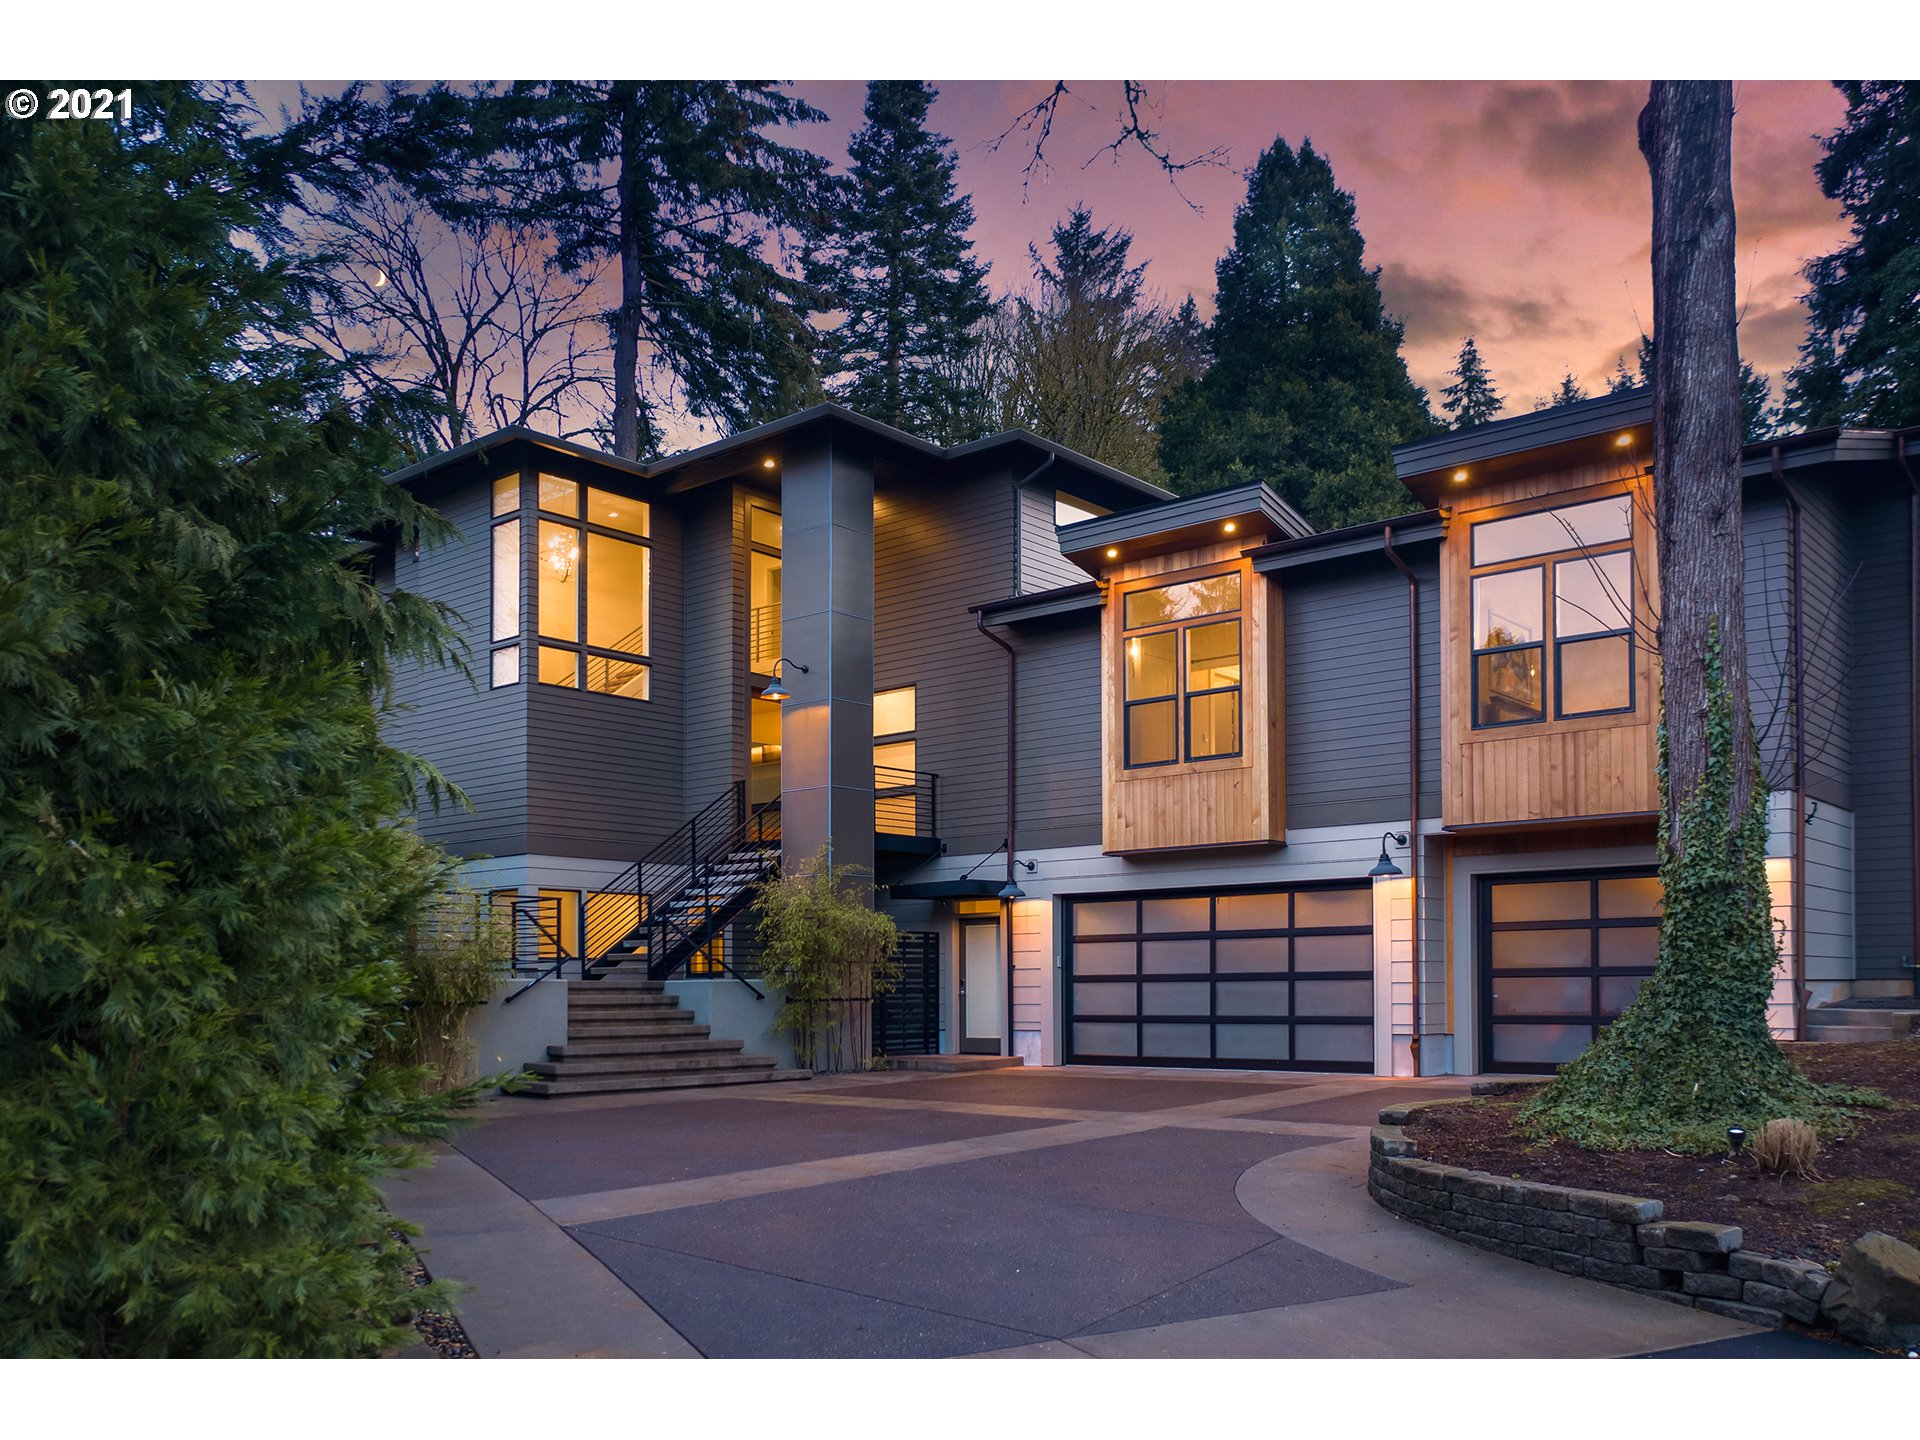 Exquisite custom-built modern masterpiece by award-winning Exceptional Homes by Andre in LO's Uplands neighborhood. Designed to be light-filled & perfectly suited for entertaining & casually elegant living. Lavish features - Ann Sacks tile, stunning light fixtures & epic HEOS sound system throughout. Luxurious main floor master suite. Fenced yard with covered patio & fire perfect for all seasons. Steps from Springbrook City Park, 5 min from LO schools & downtown. Access to Uplands easement